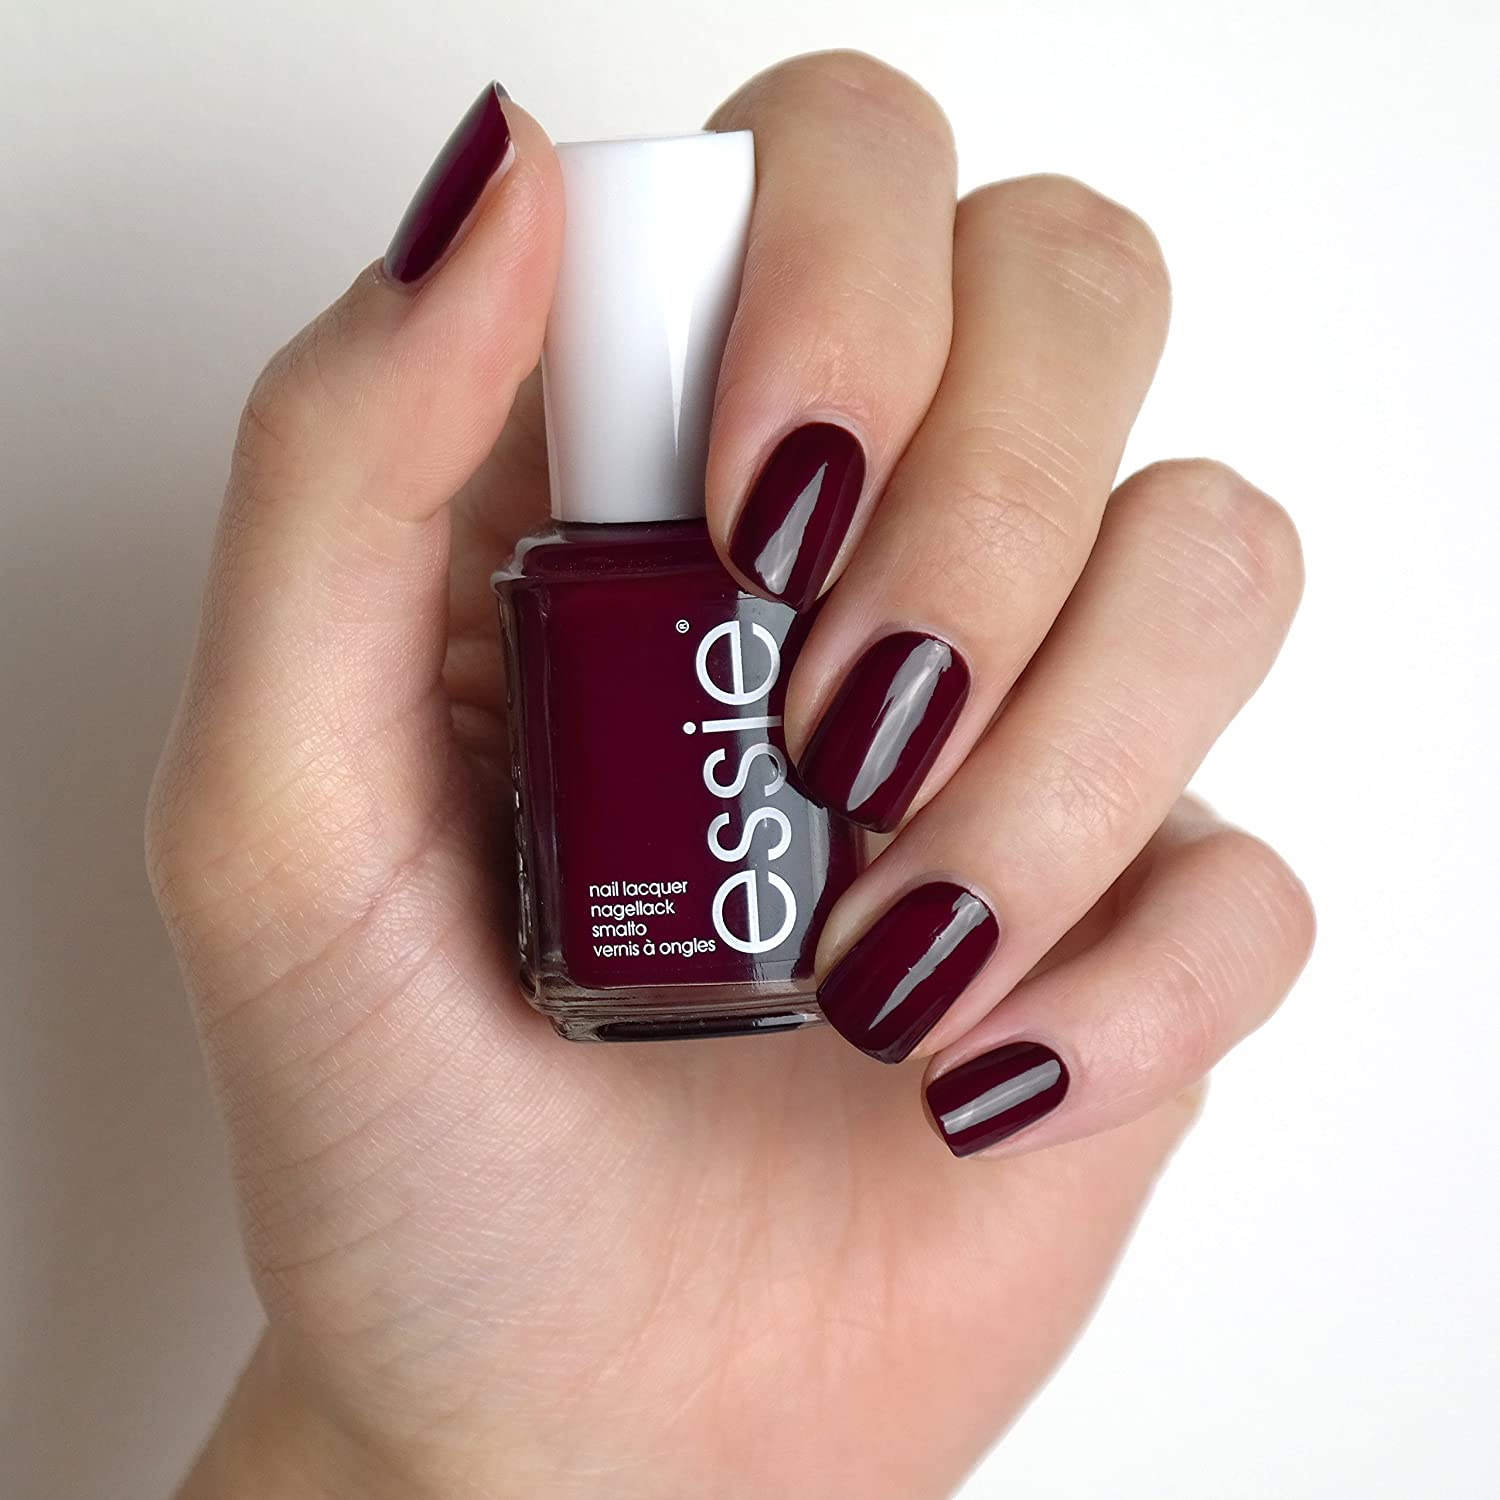 essie Nagellack Dunkles Rot wicked Nr. 49/Ultra deckender Farblack ...